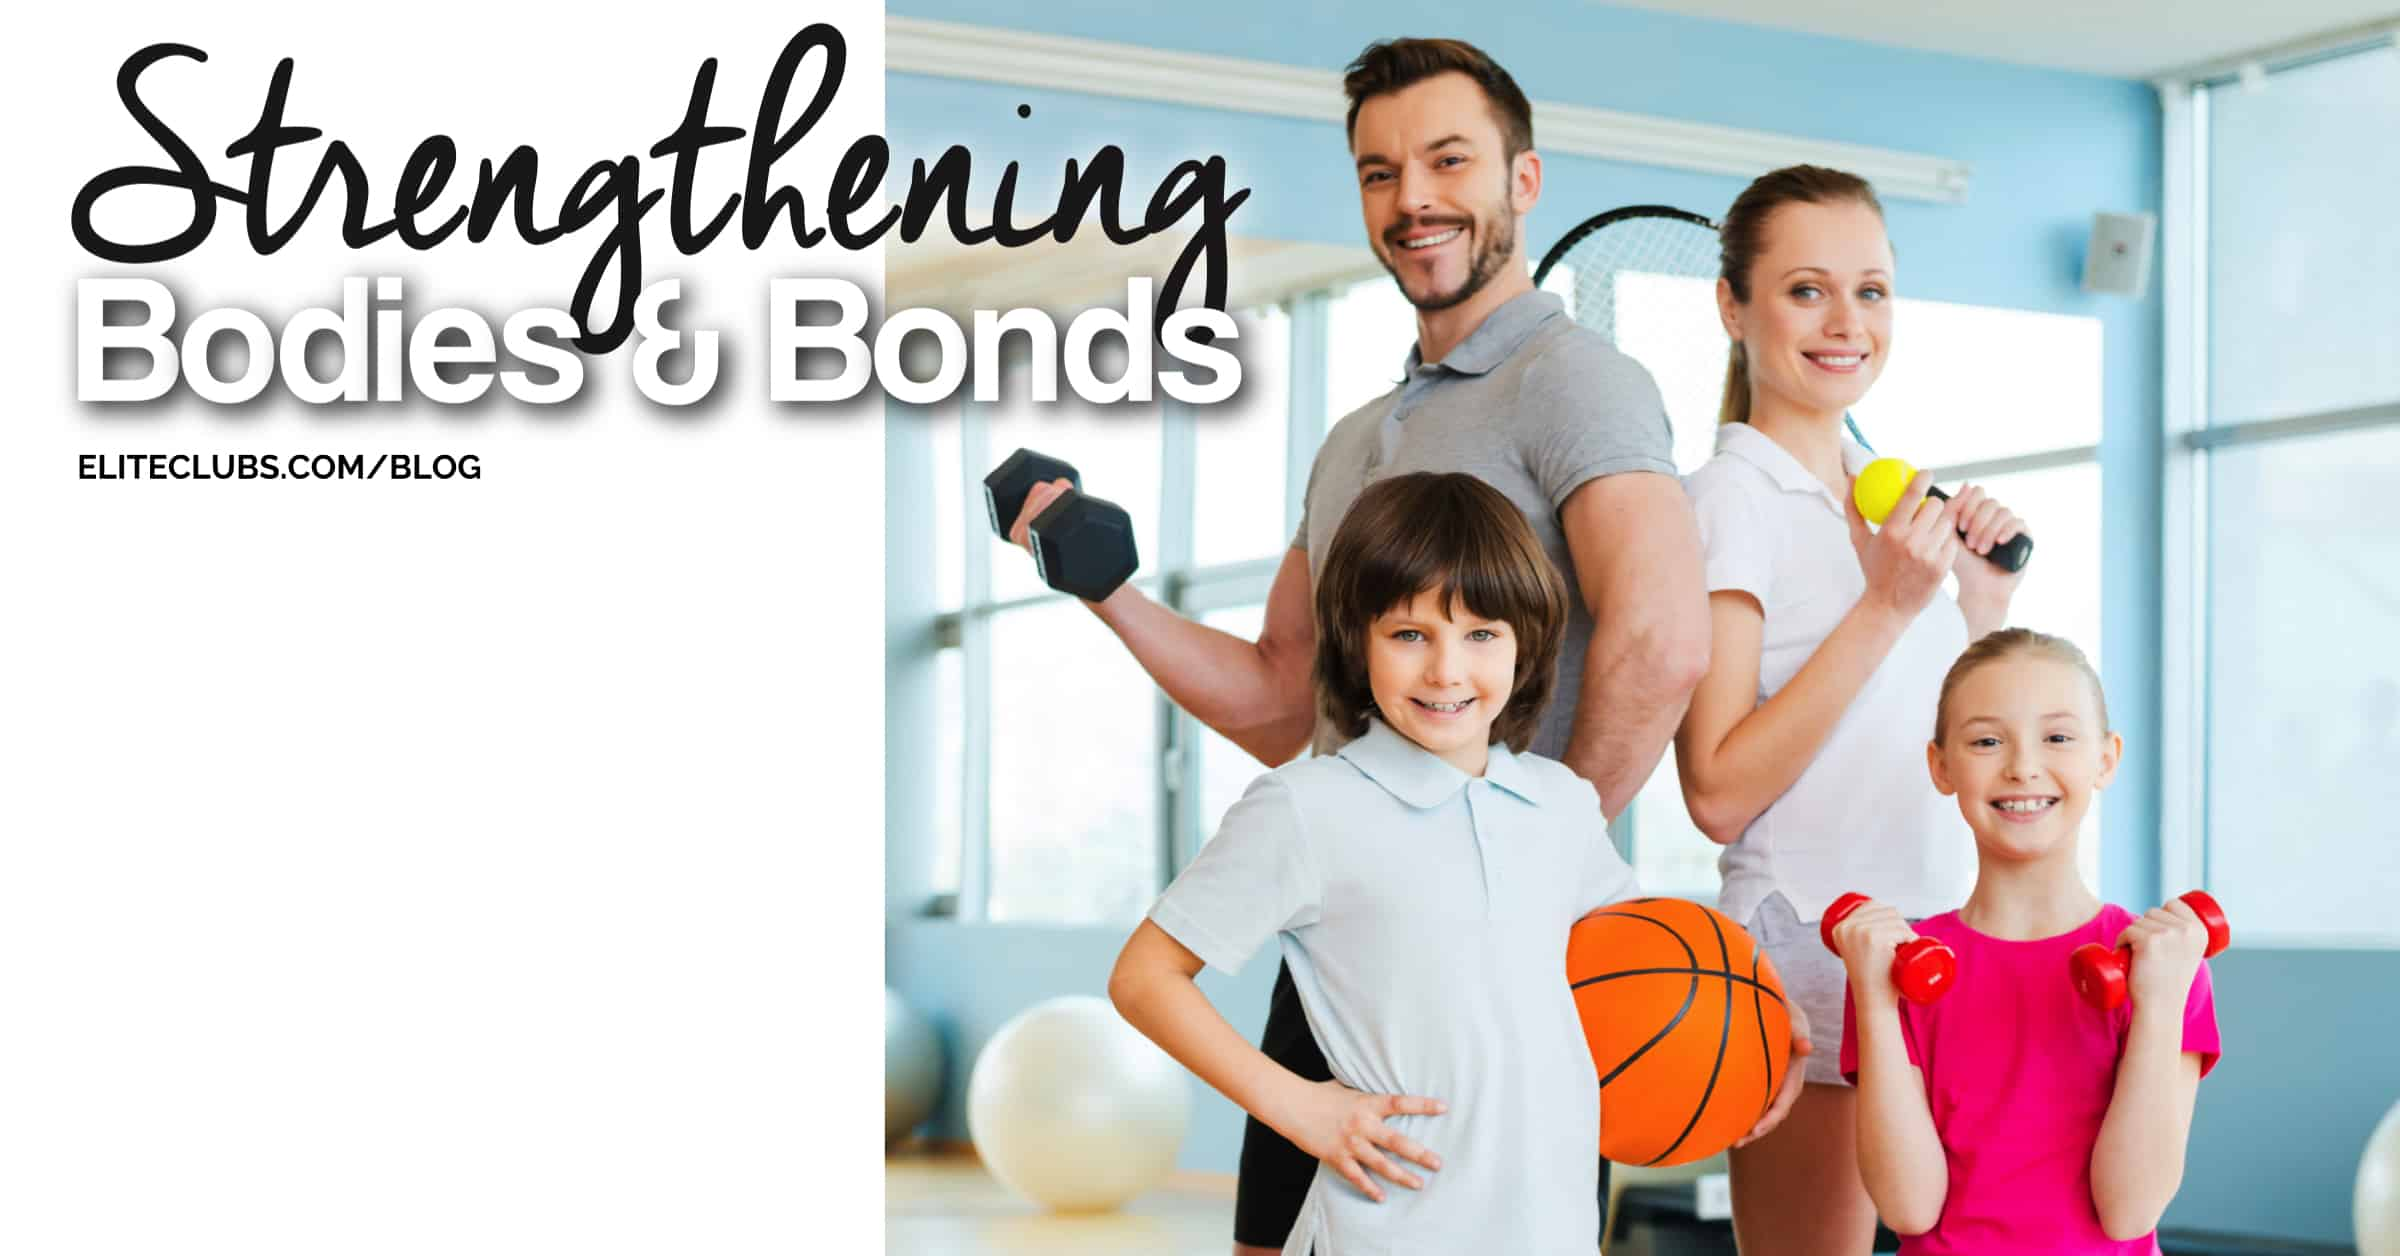 Strengthening Bodies & Bonds - Group Exercise for Families